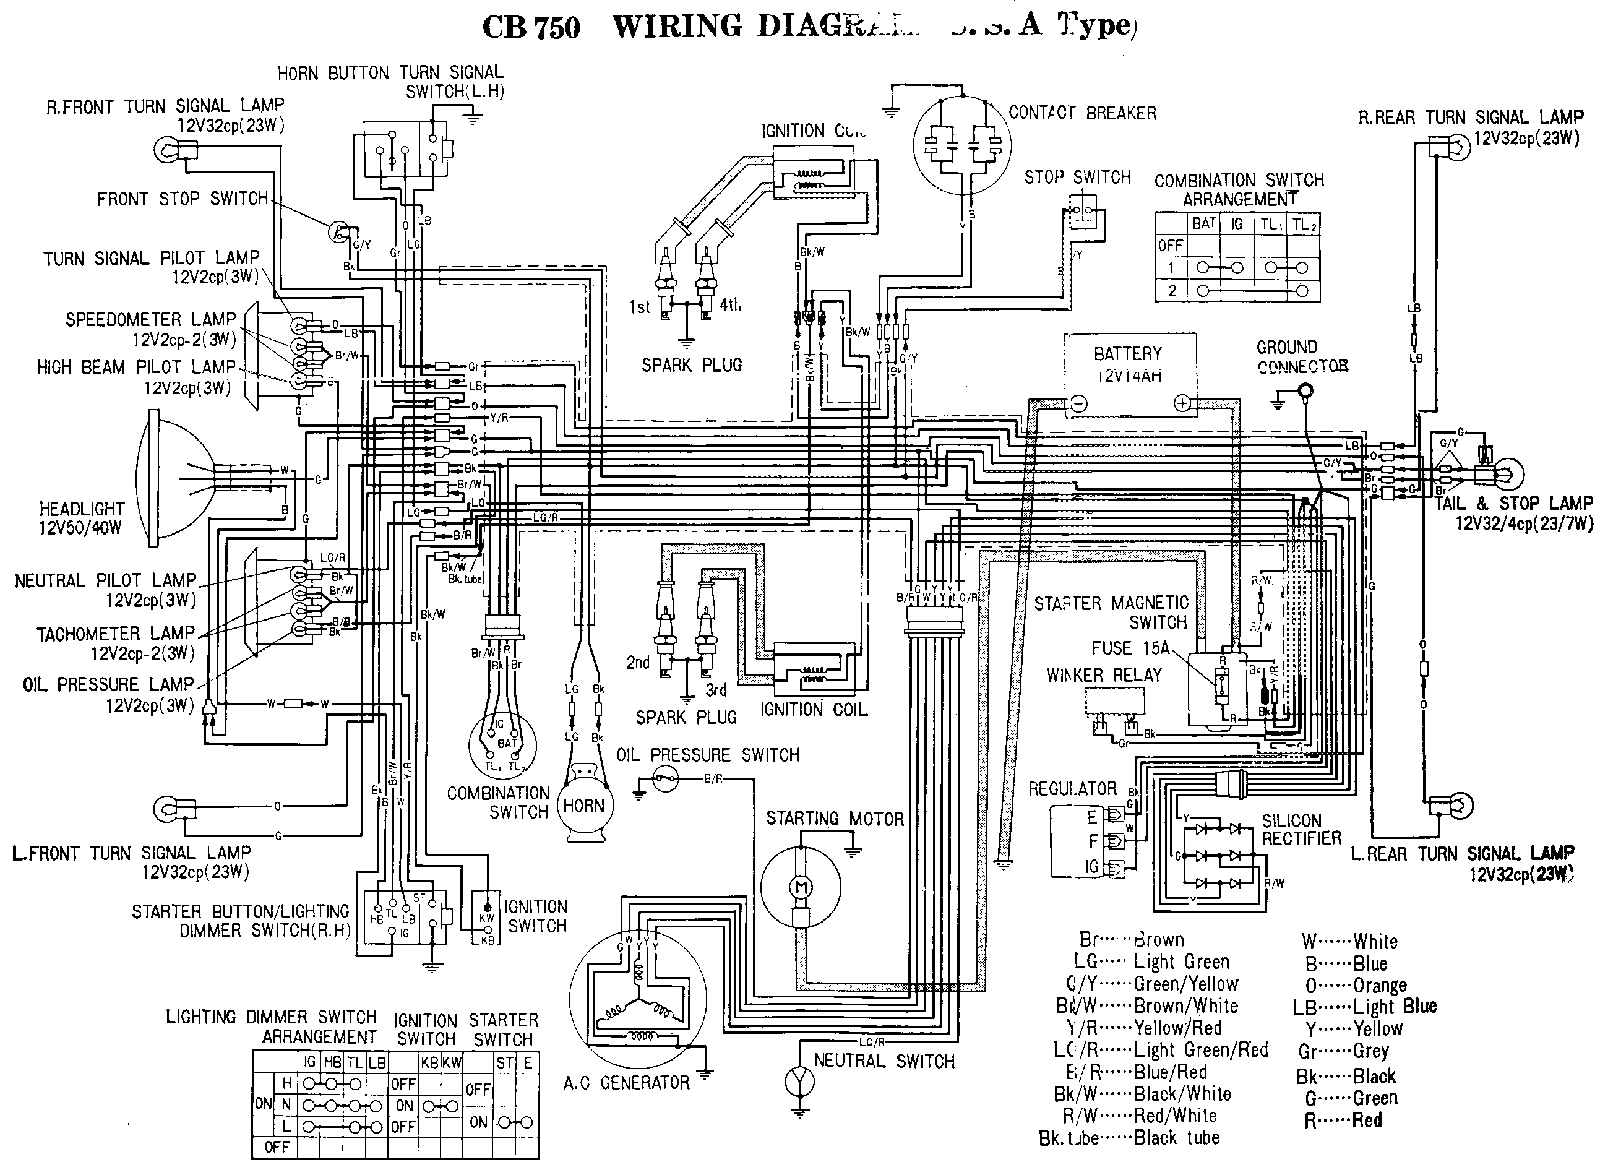 Honda CB750 Wiring Diagrams